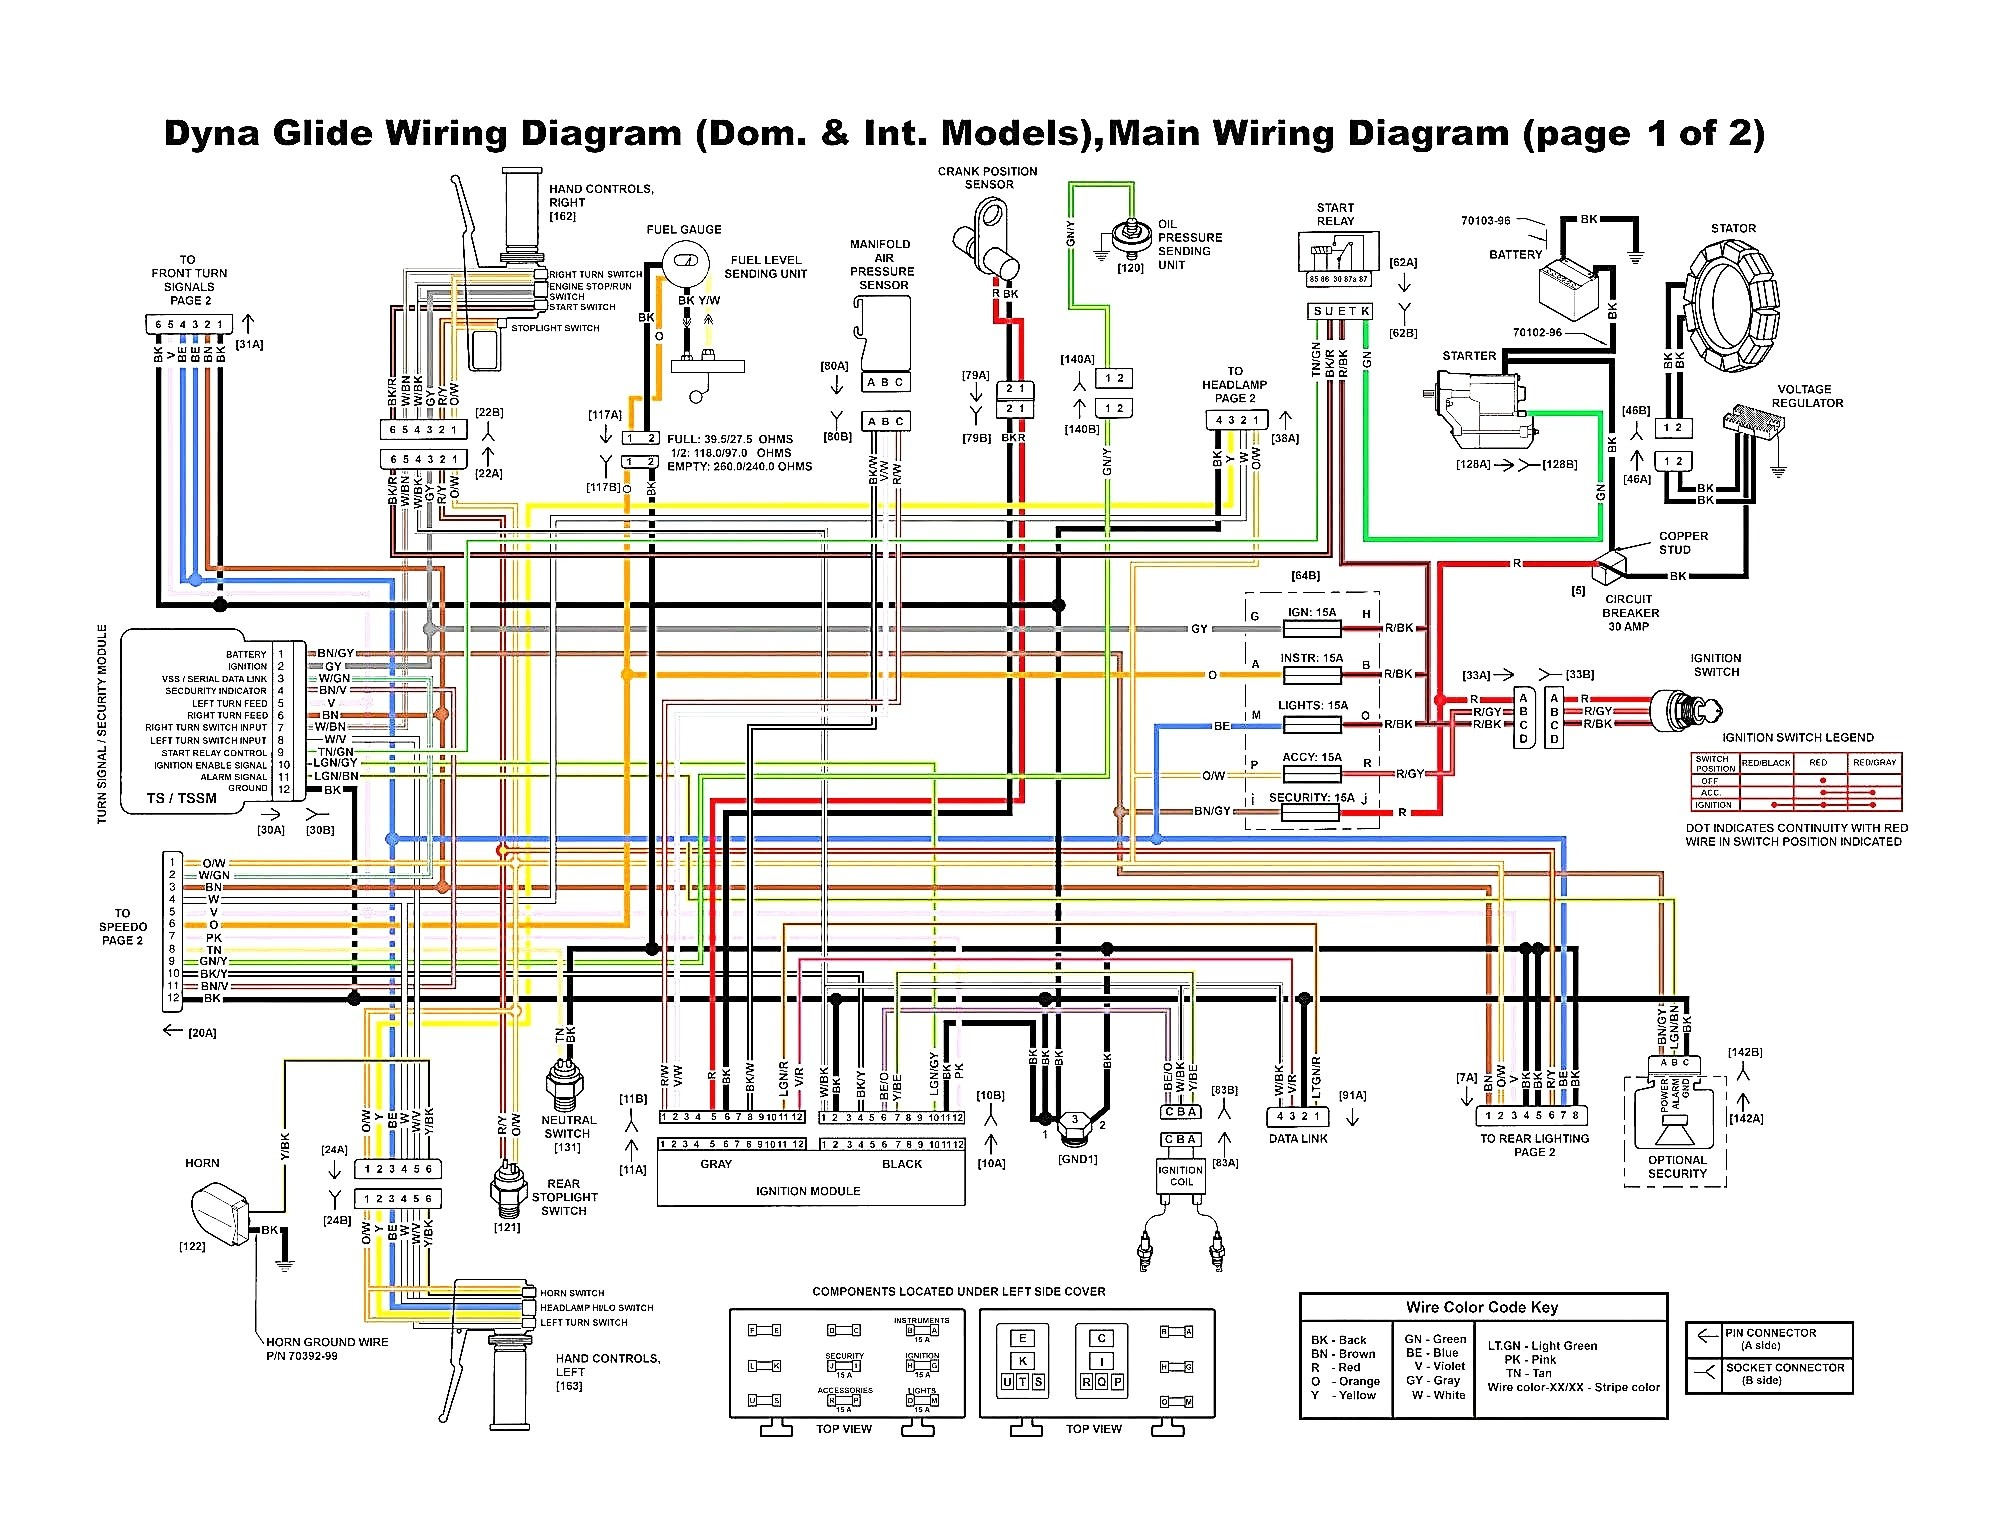 Wiring Diagram For 1980 Flh Harley Davidson - M7 Wiring Diagram on